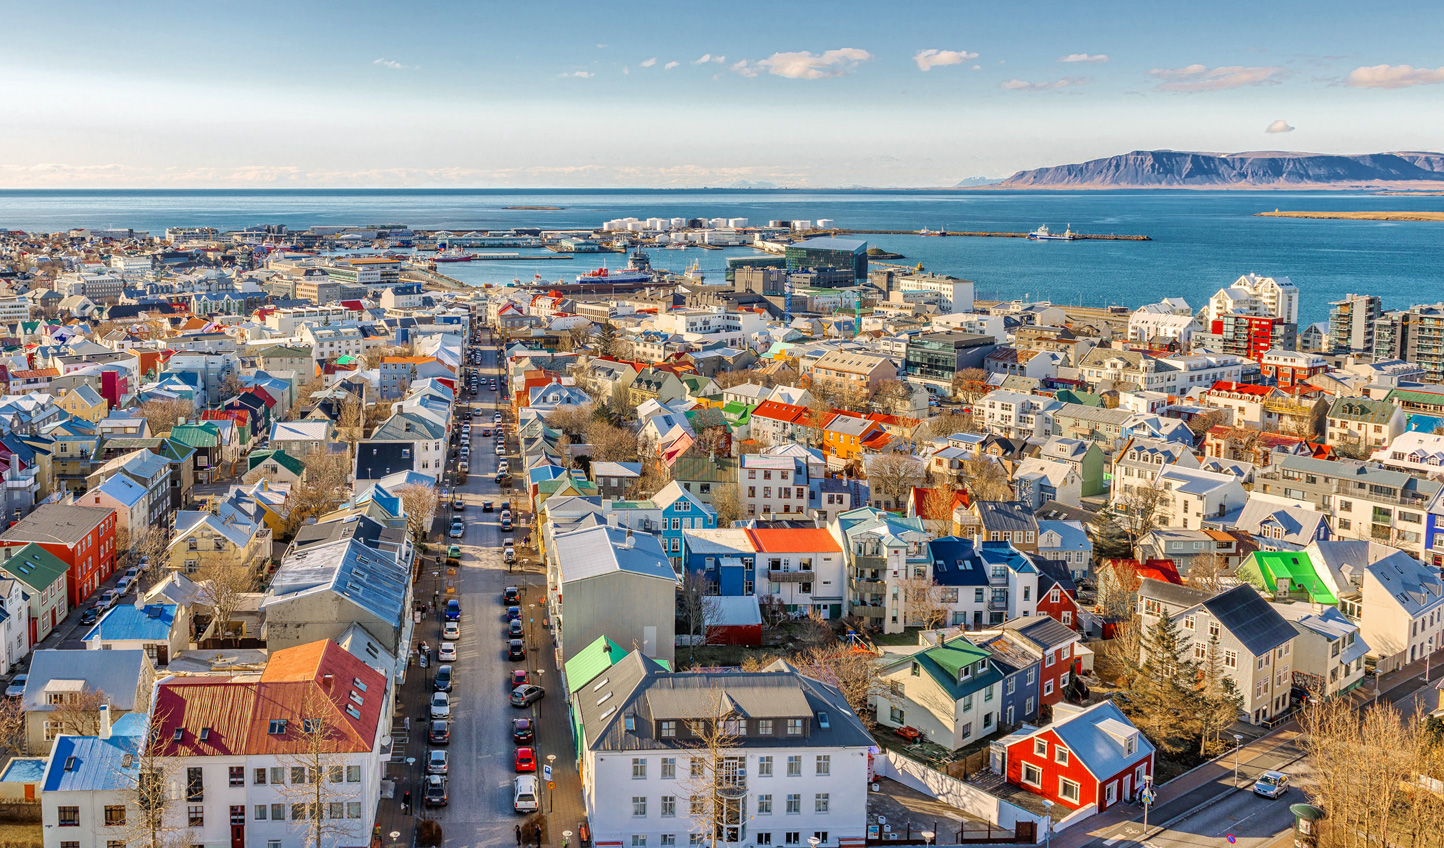 Explore Reykjavik's quirky streets